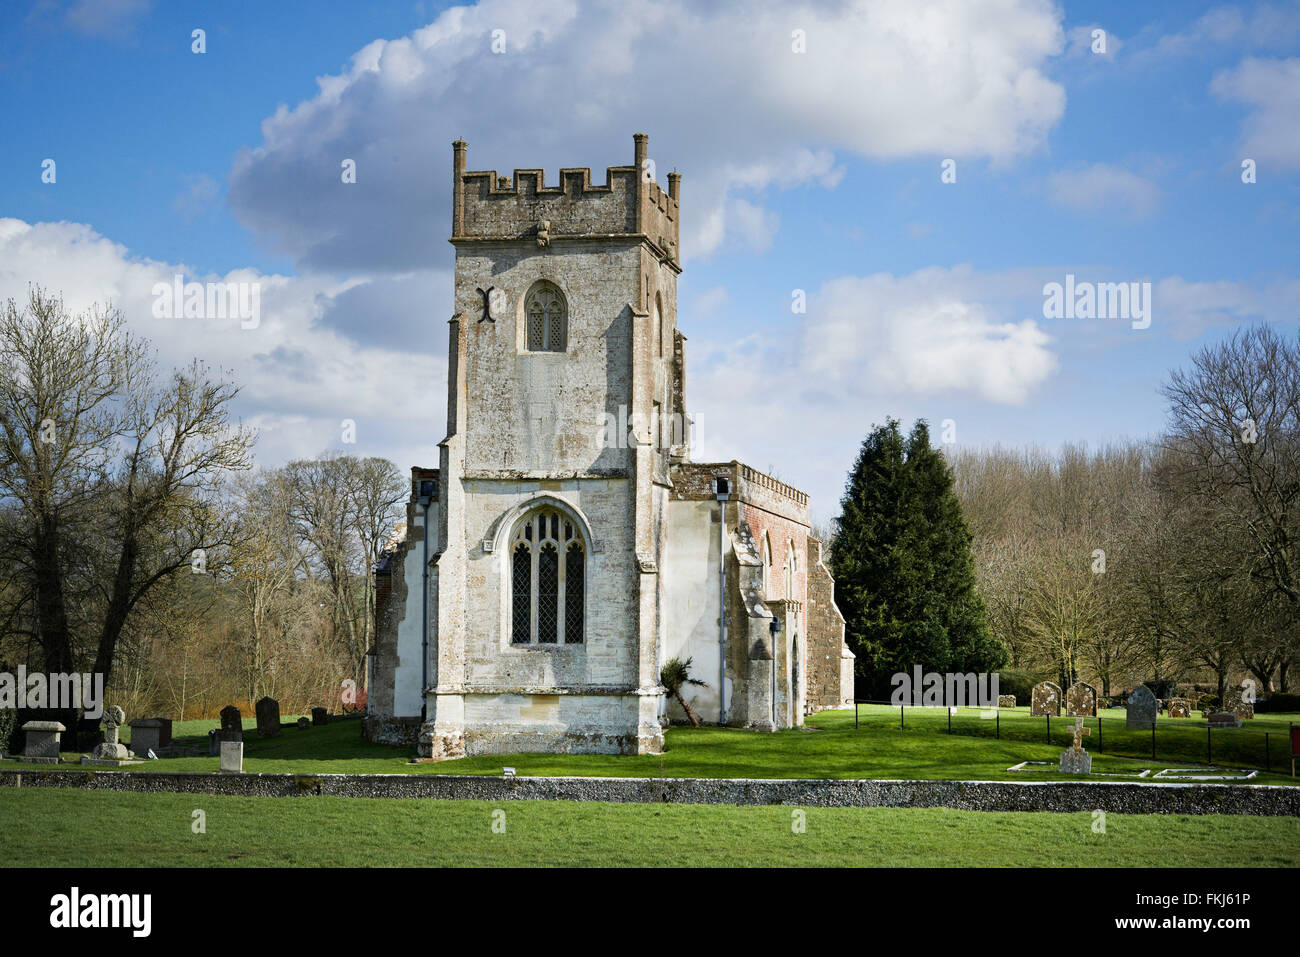 A Rural Church ,Naive,Pathway and Trees - Stock Image